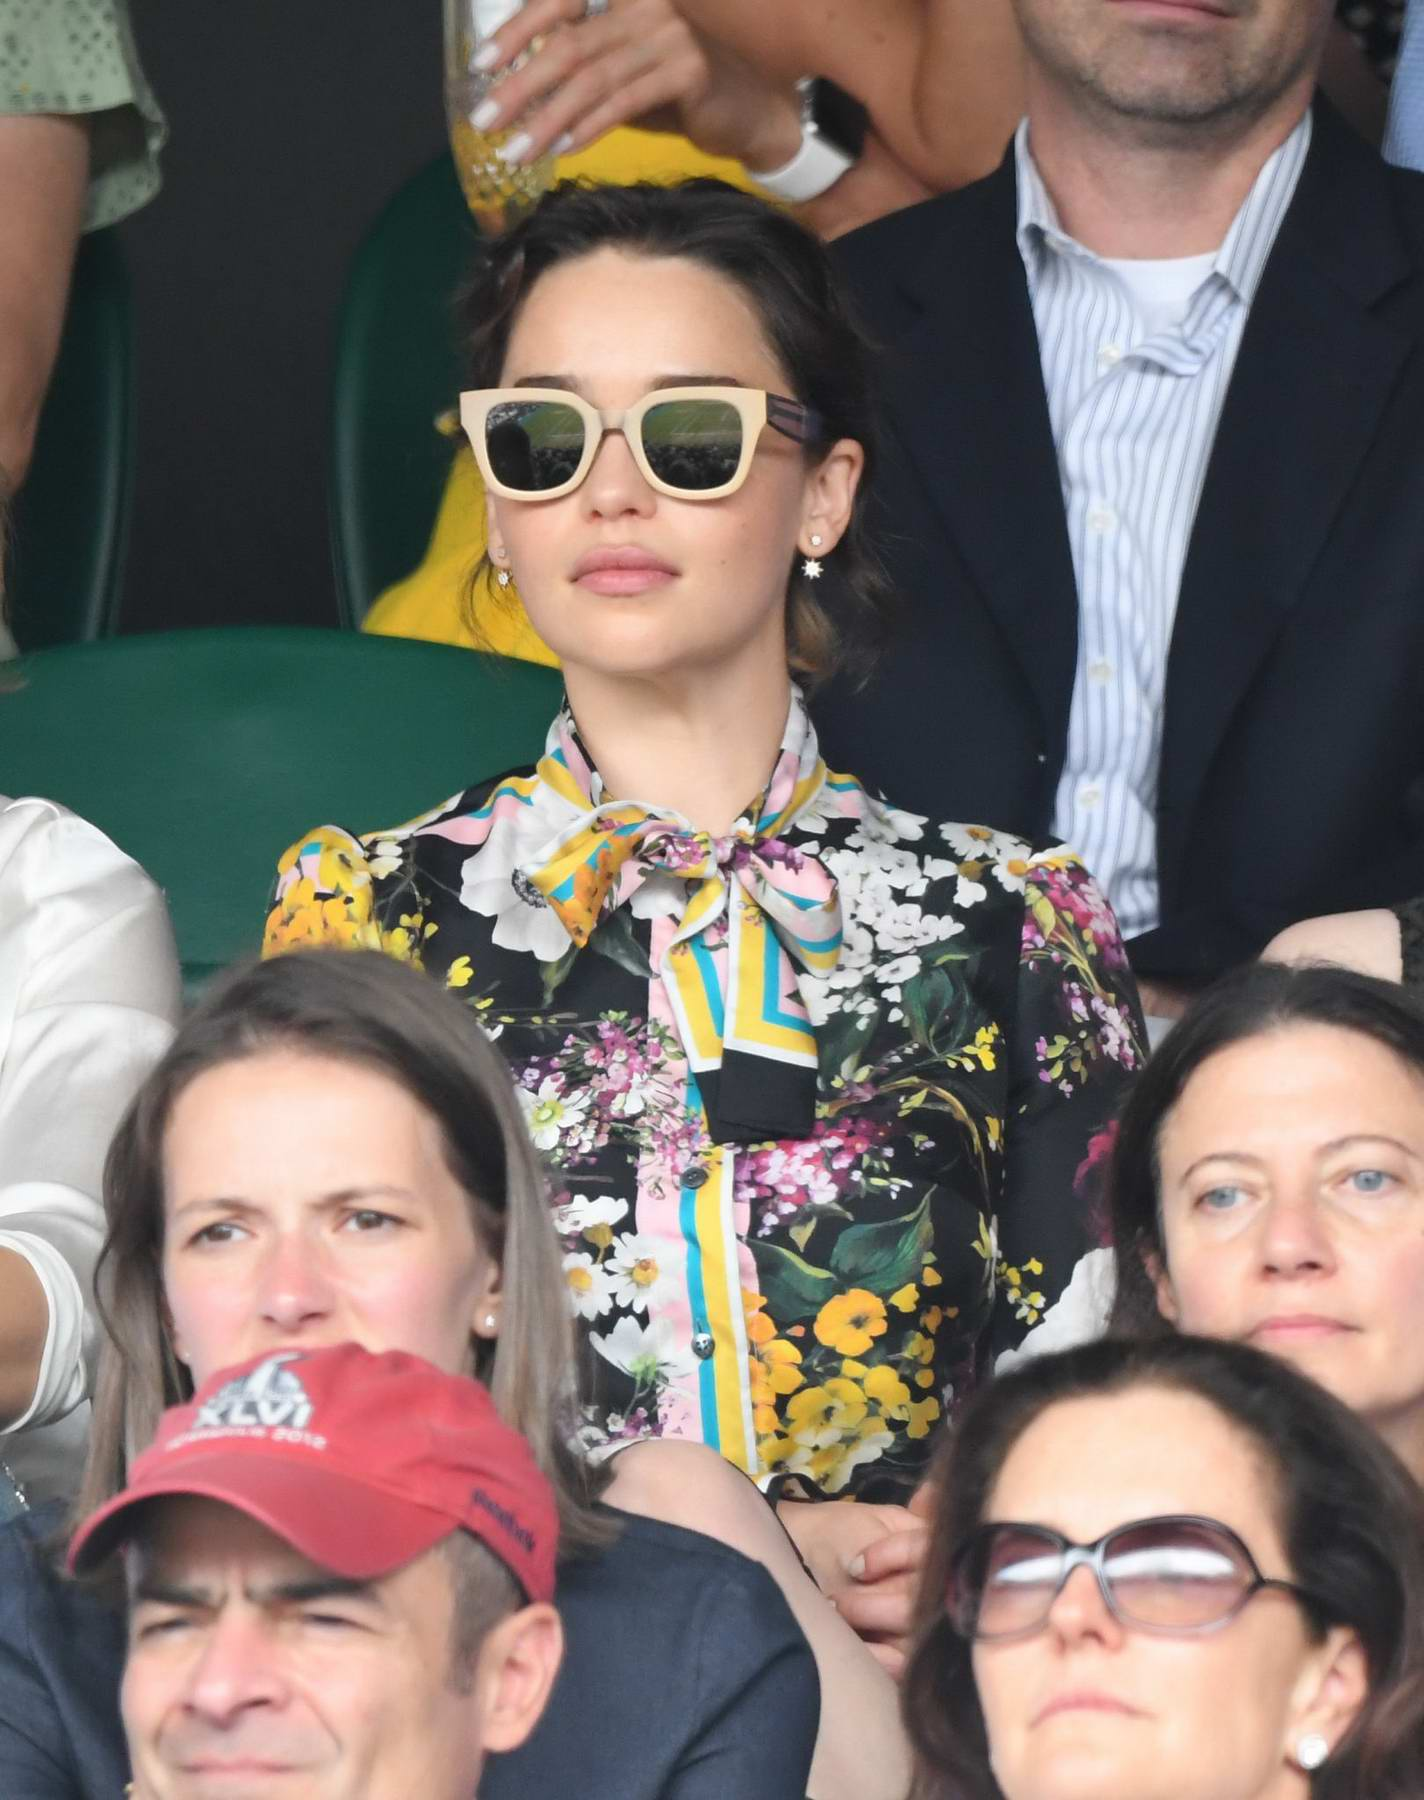 Emilia Clarke attends the Men's Singles Final on Day 13 of the Wimbledon 2017 in London